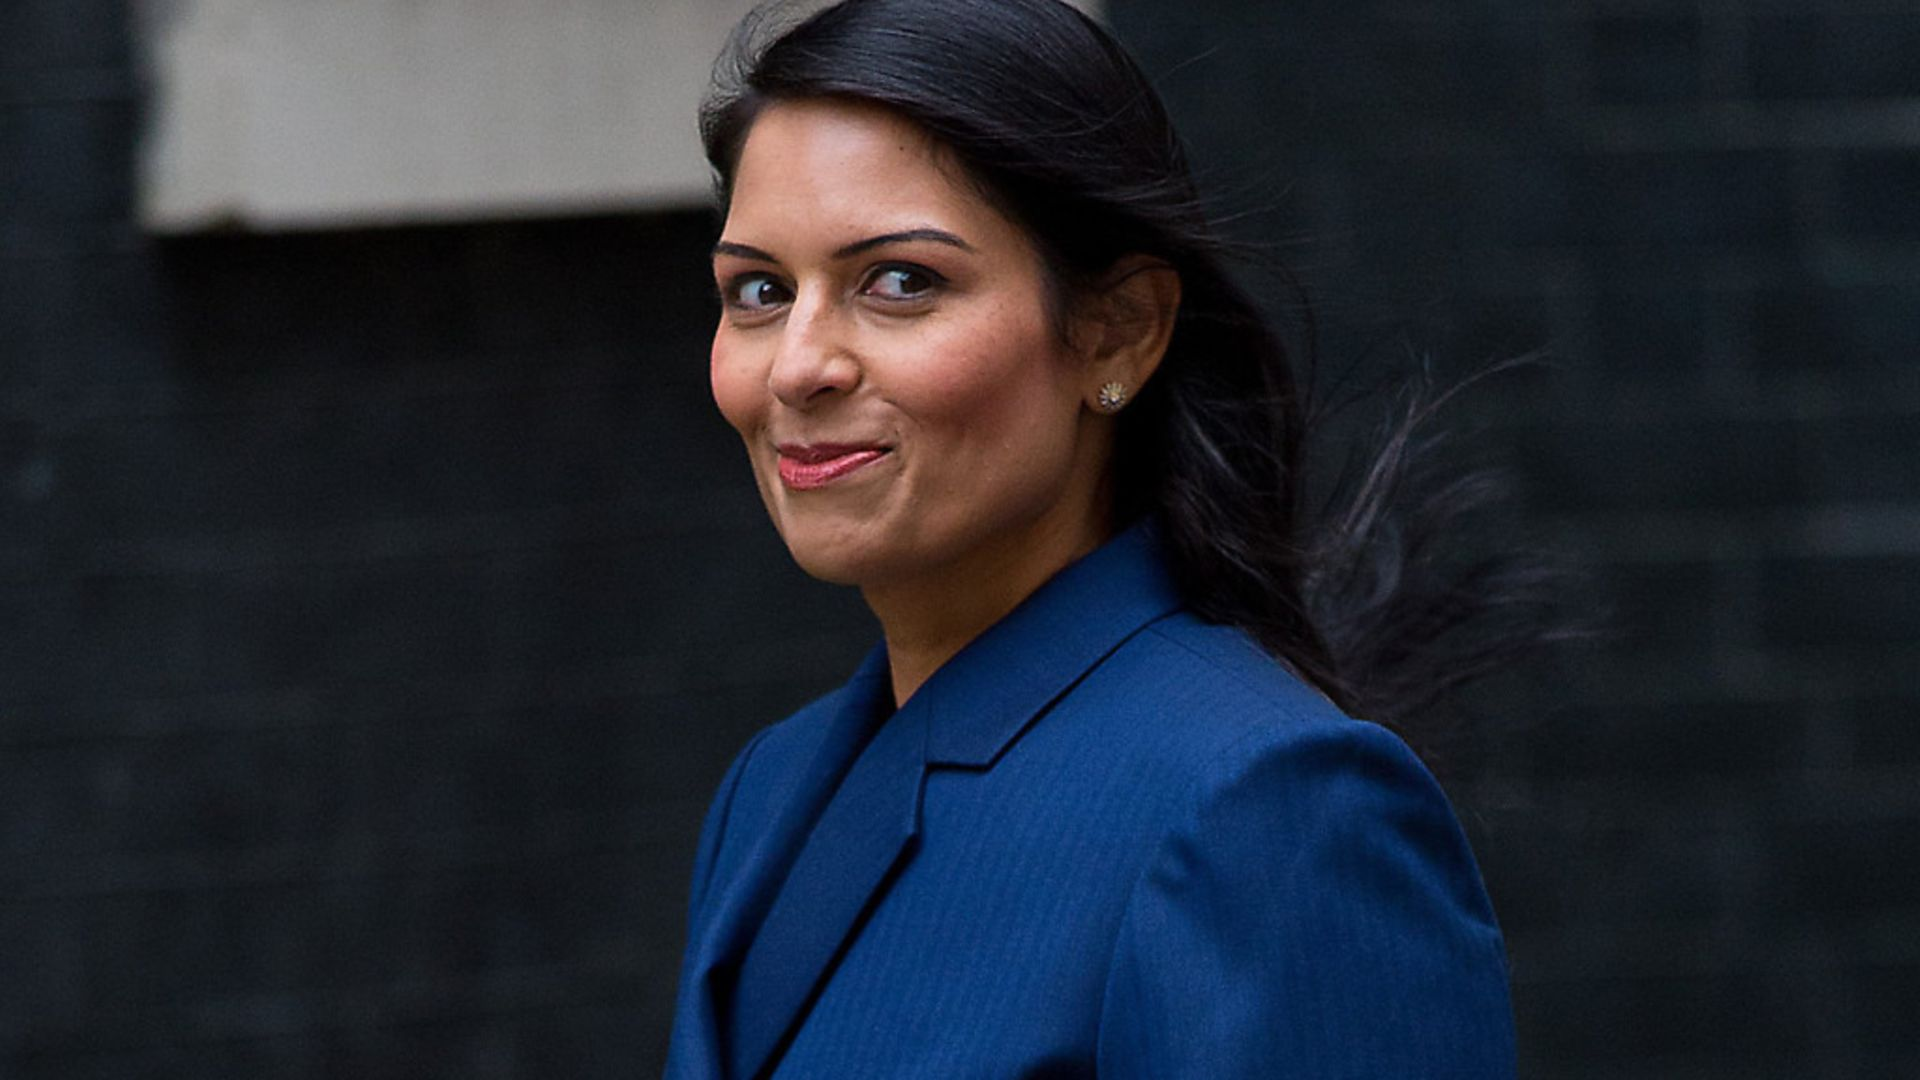 Home secretary Priti Patel had originally said processing asylum seekers on offshore centres in Ascension and St Helena was too expensive and logistically difficult - Credit: Ben Pruchnie/Getty Images